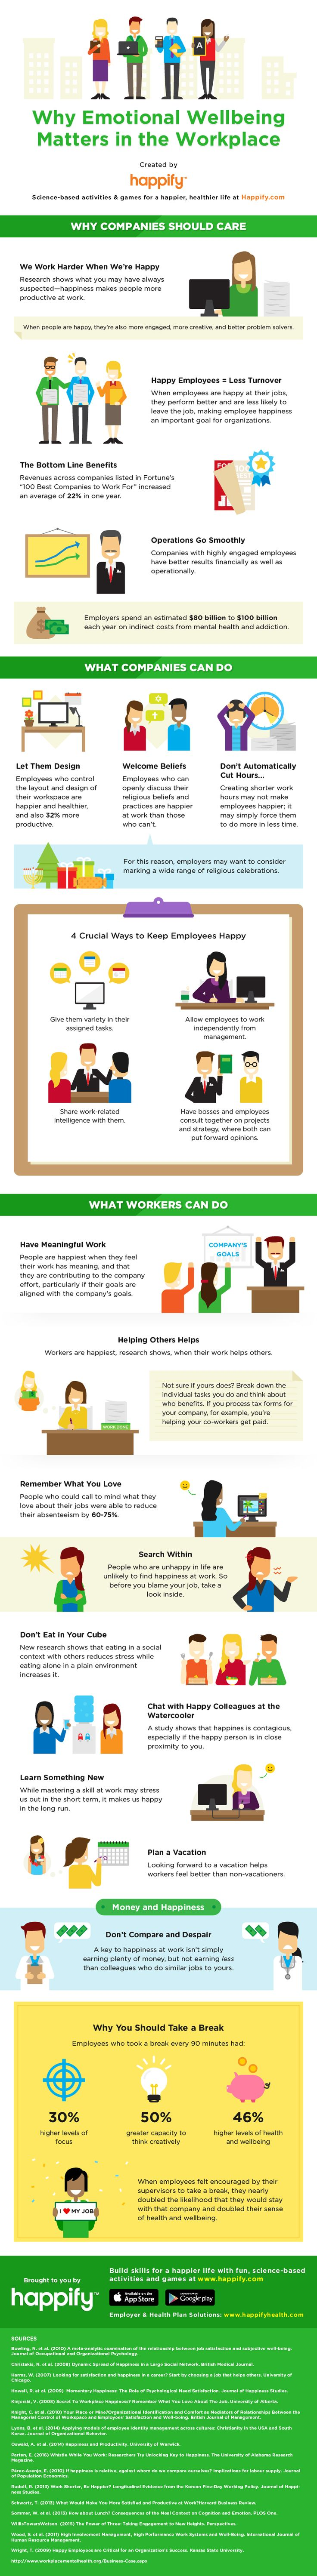 INFOGRAPHIC: Here's Why Happiness at Work Really Matters